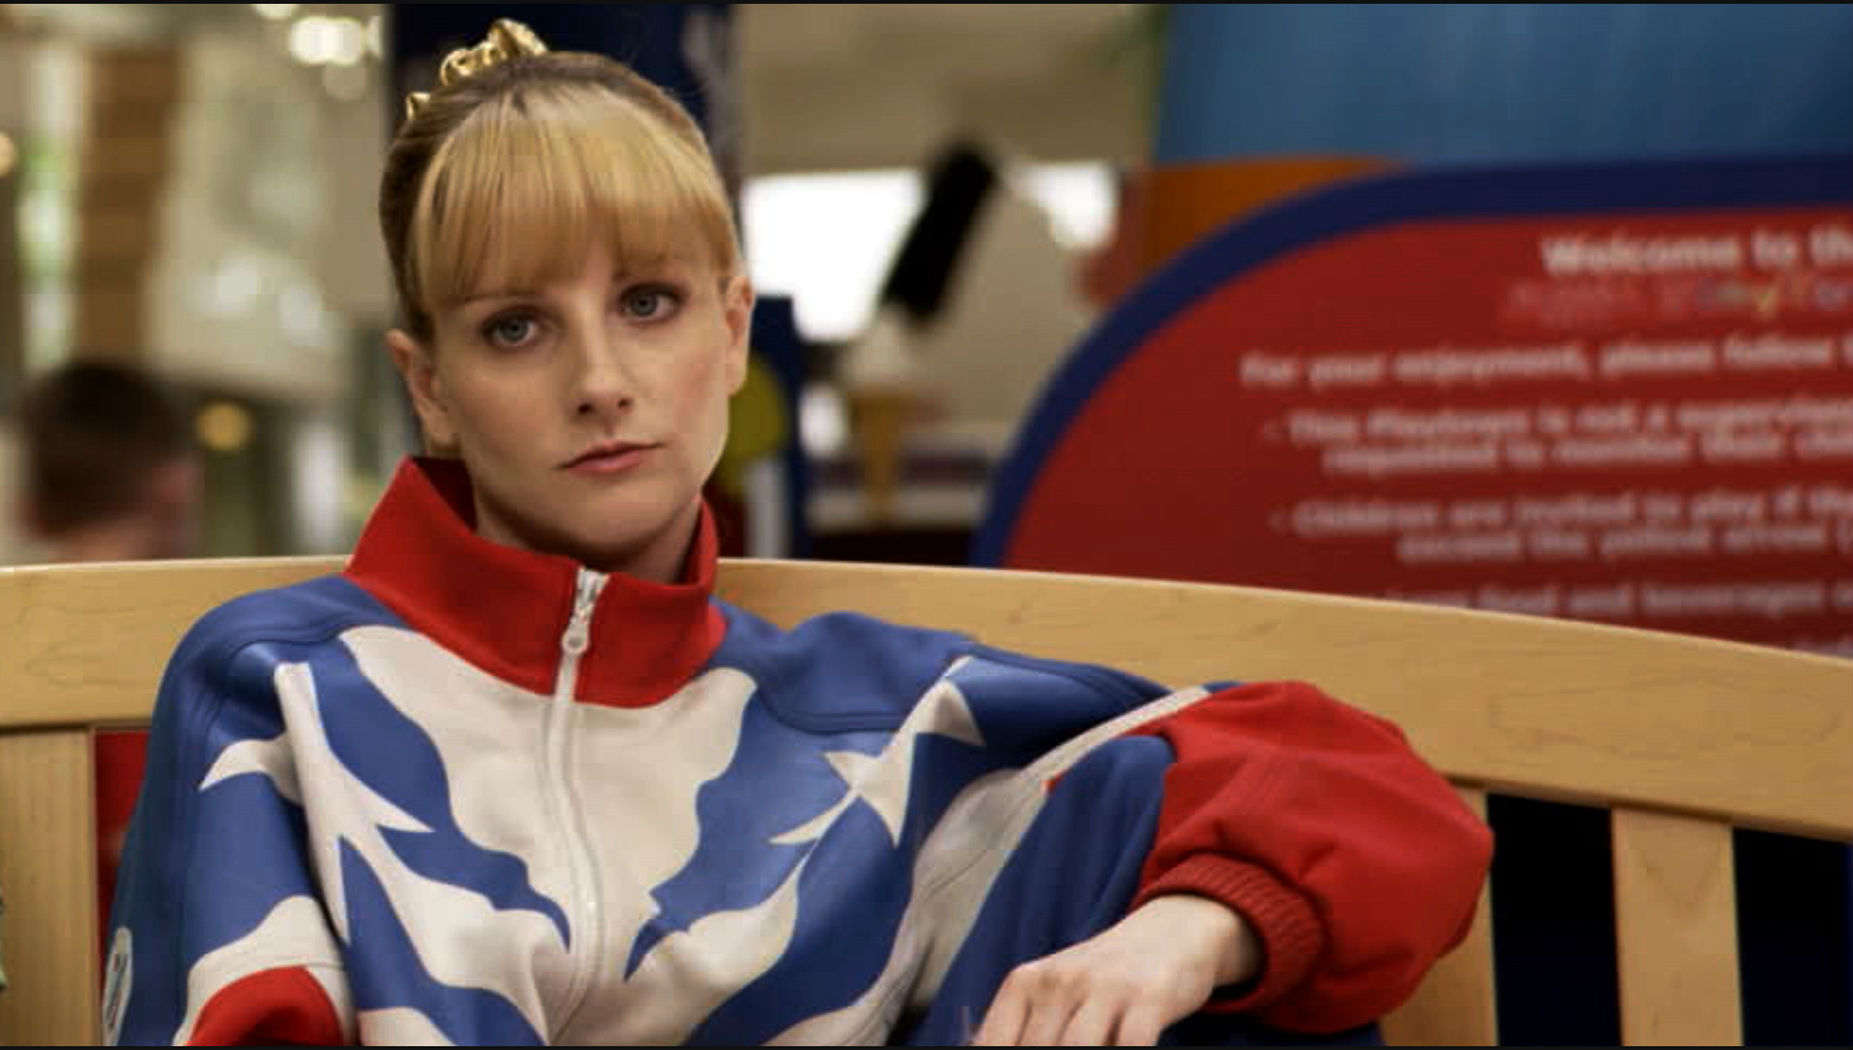 The Bronze review: Melissa Rauch plays self-absorbed